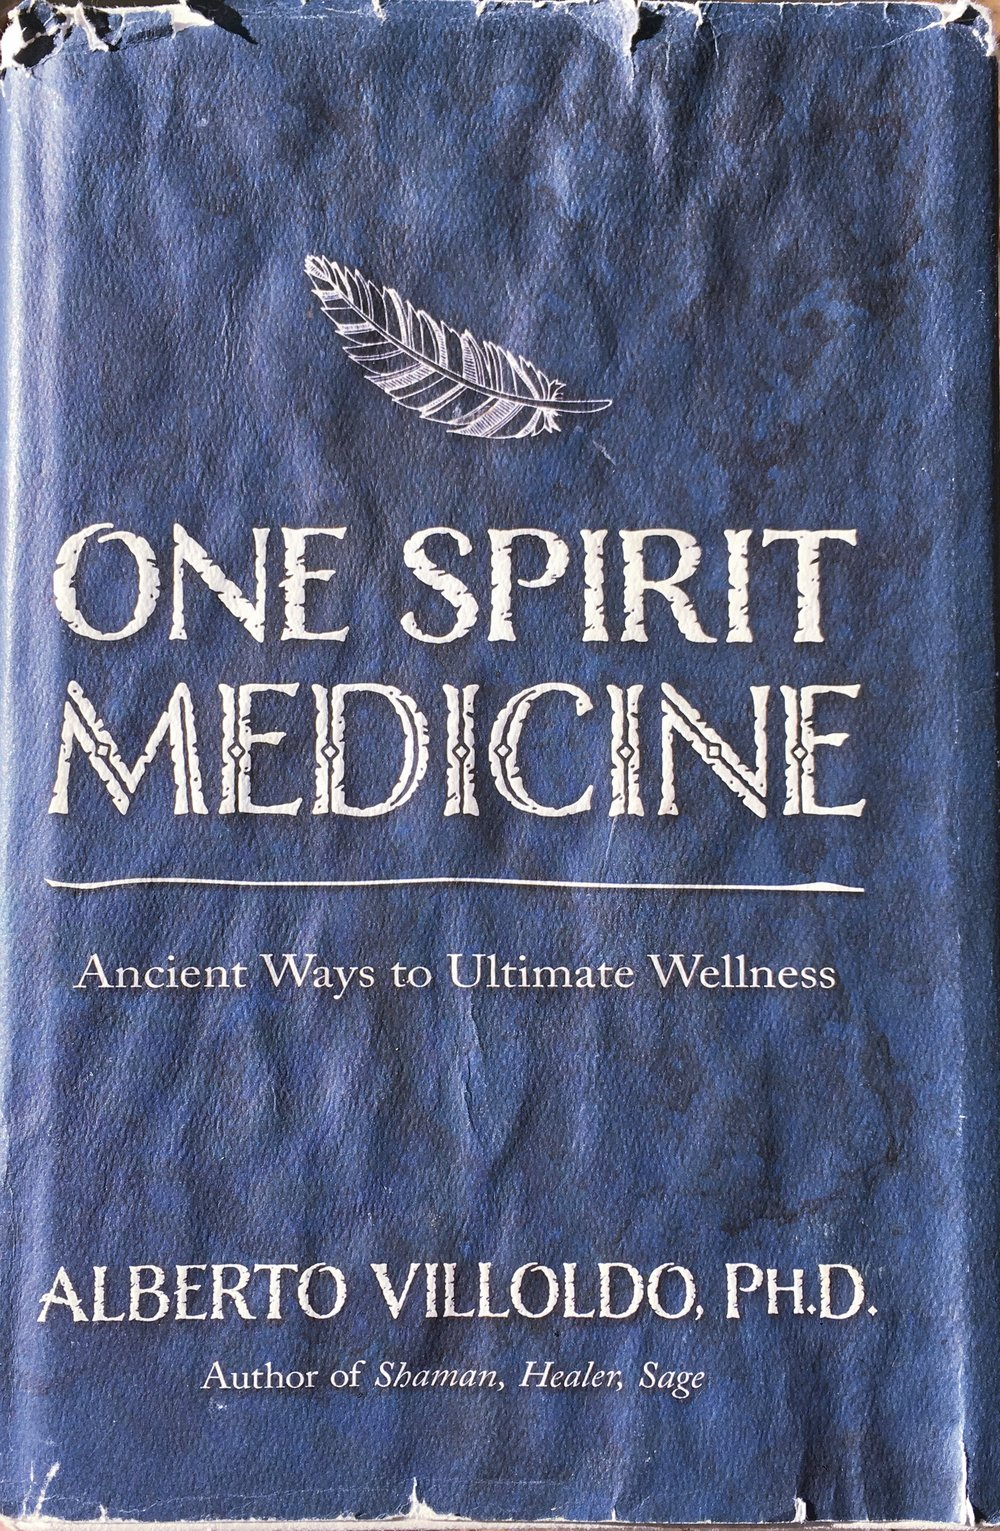 One Spirit Medicine BOOK.jpg